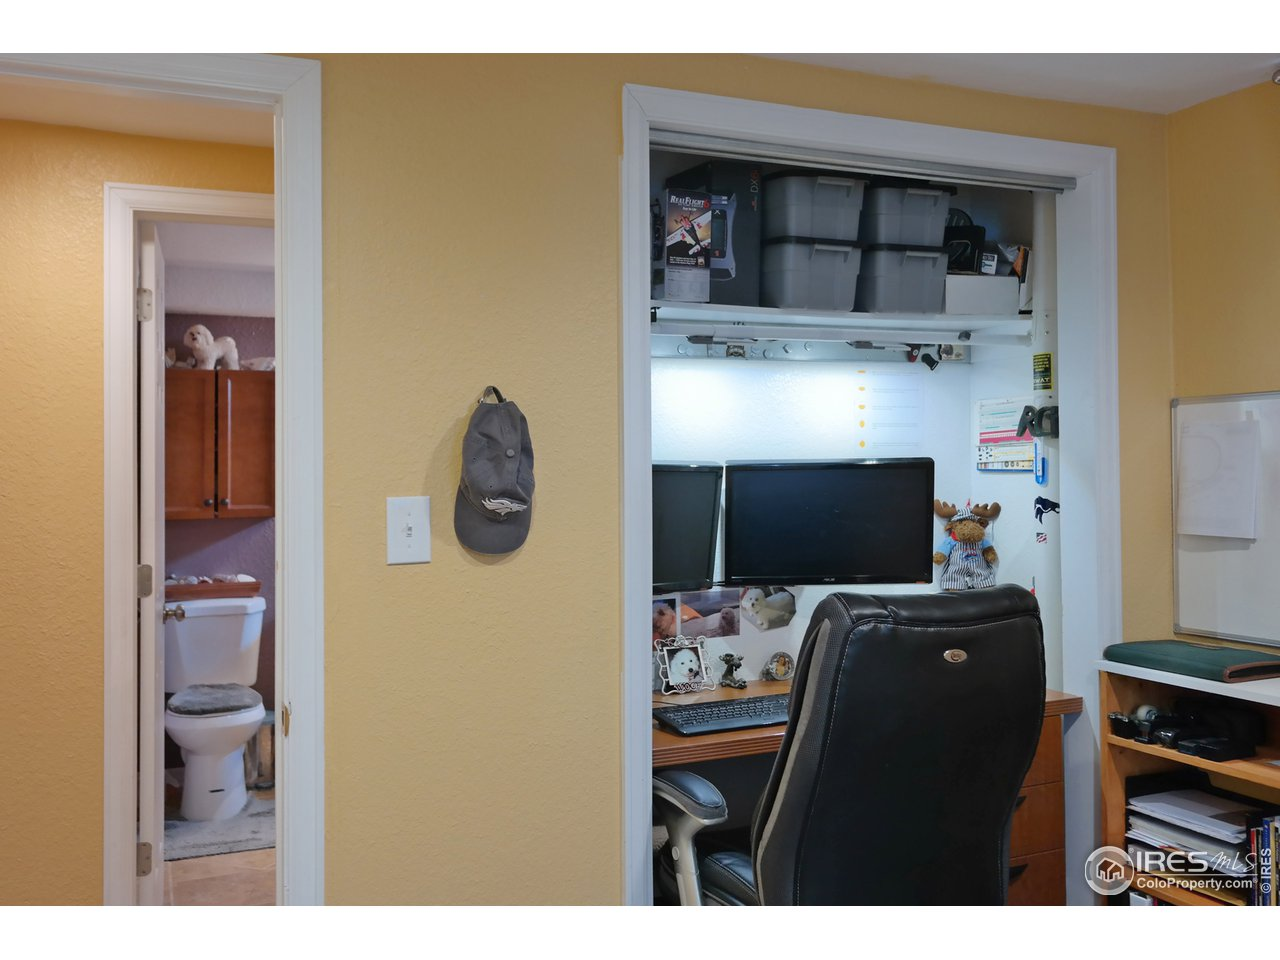 Bedroom 4 or Study/Office w/Built-In Desk